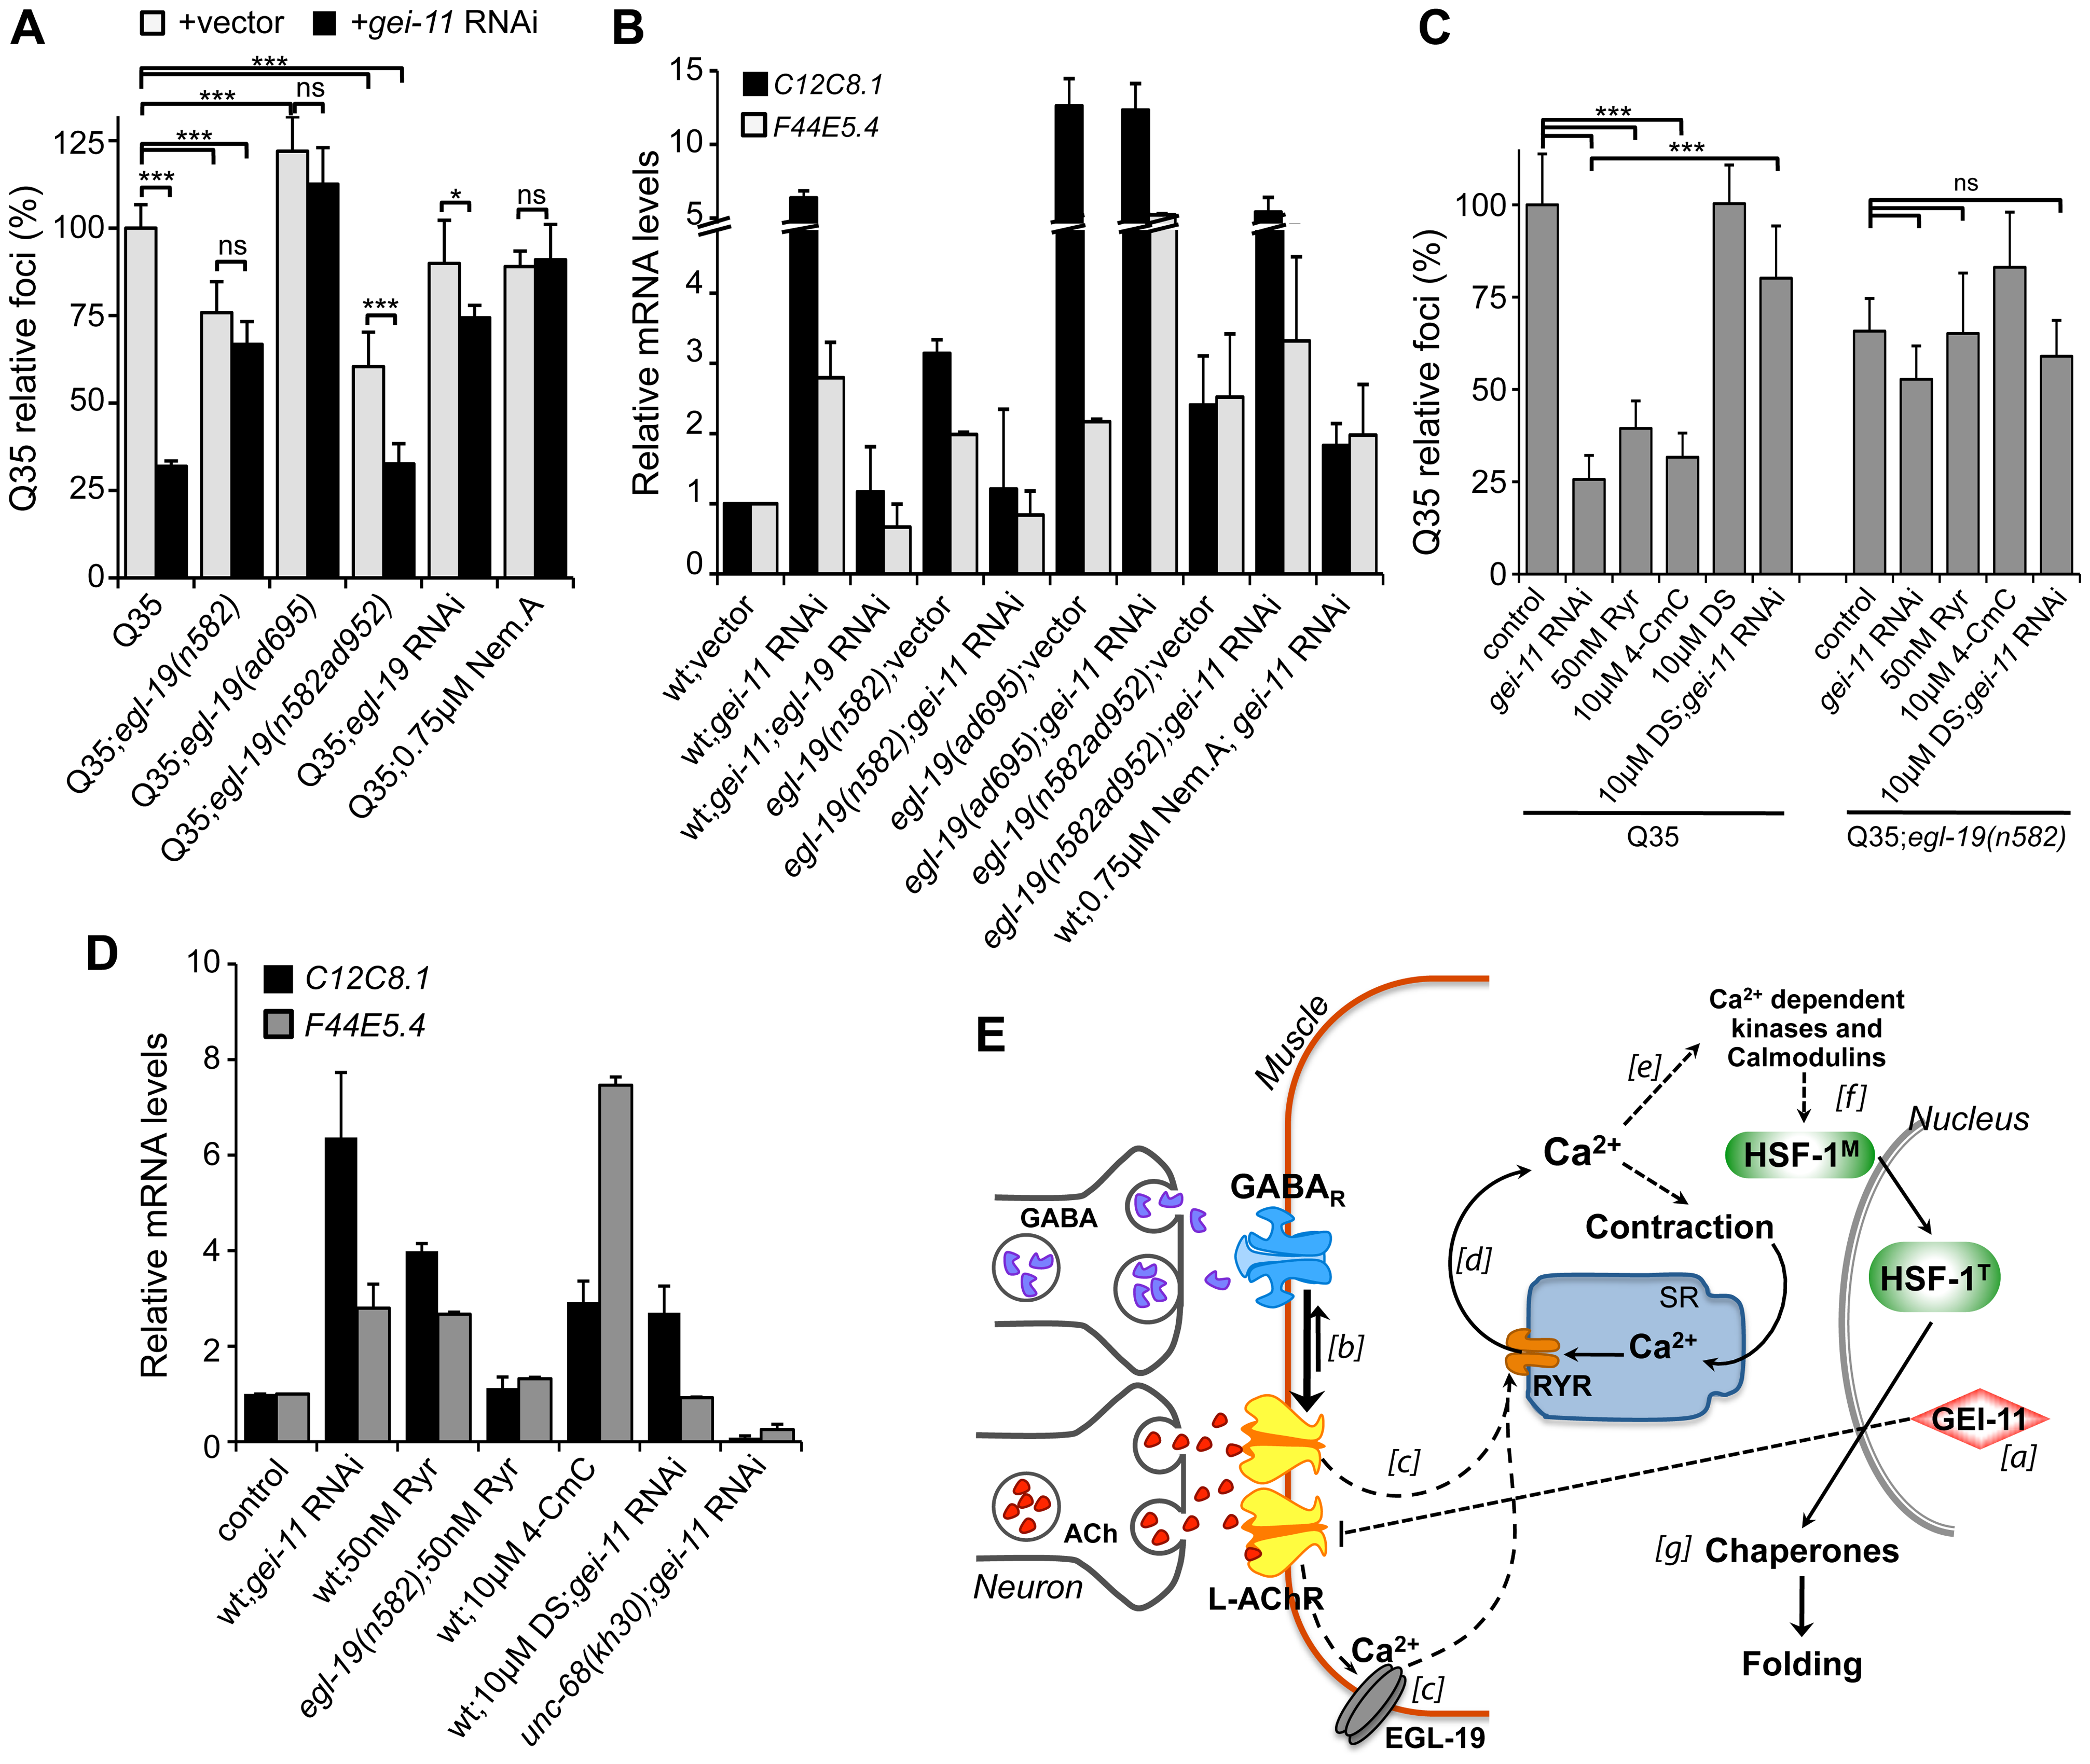 EGL-19- and RYR-mediated Ca<sup>2+</sup> influx are components of the proteostasis rescue mechanism.